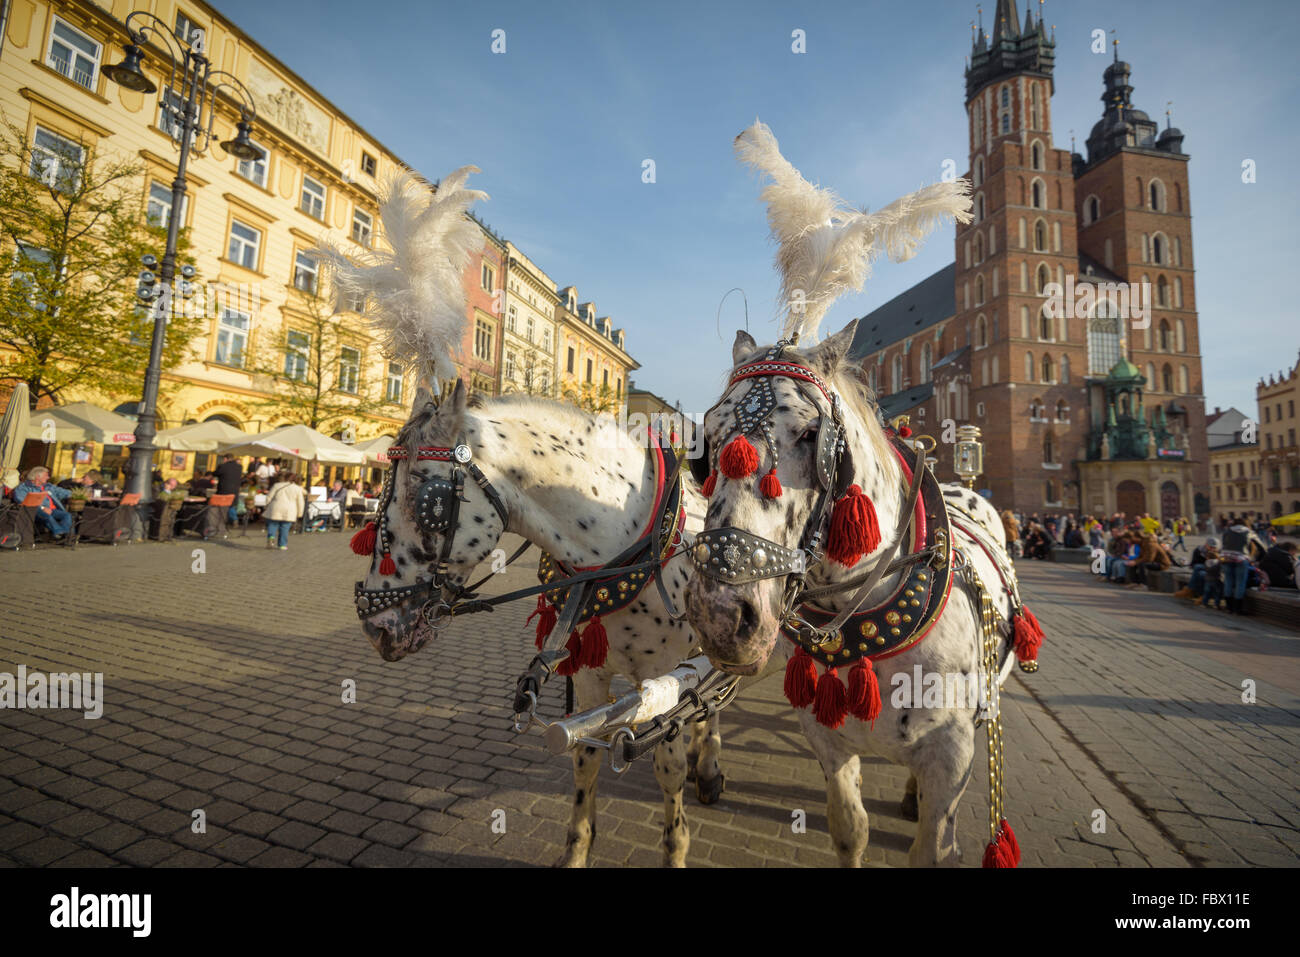 KRAKOW, POLAND - November 13, 2015: Horse carriages at main square in Krakow in a autumn day, Poland on November - Stock Image